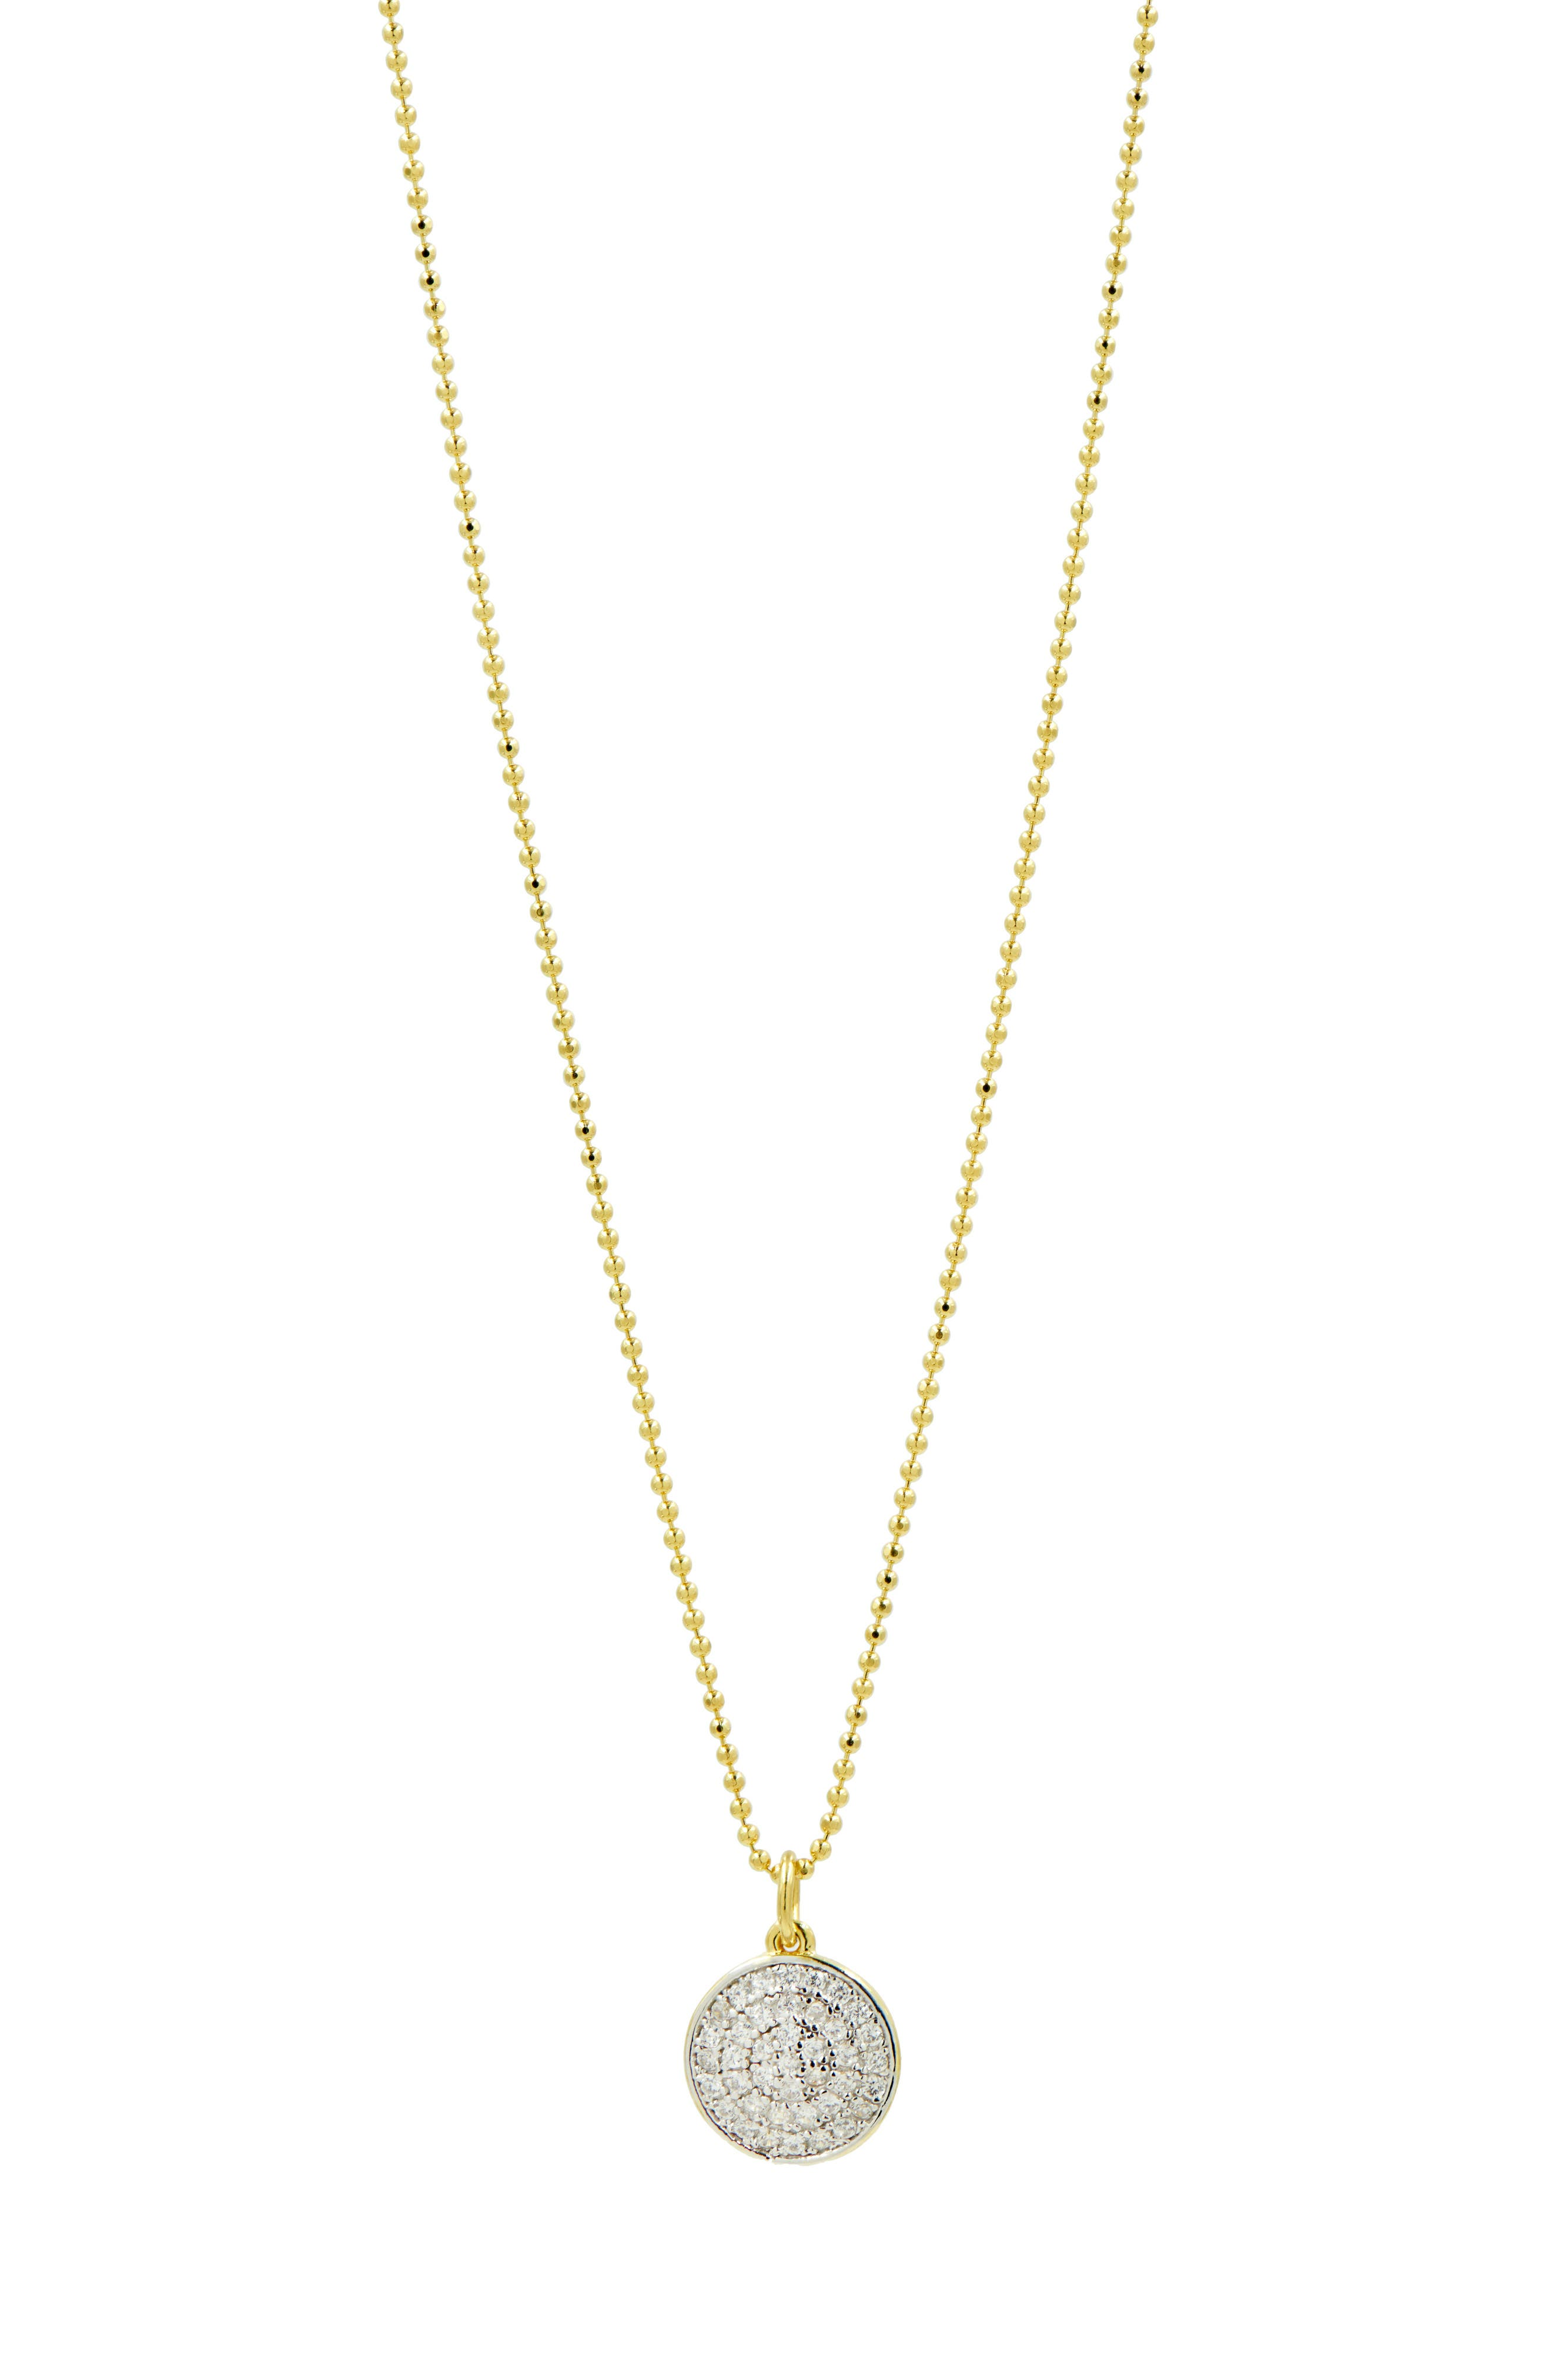 FREIDA ROTHMAN Radiance Pave Disc Pendant Necklace in Gold